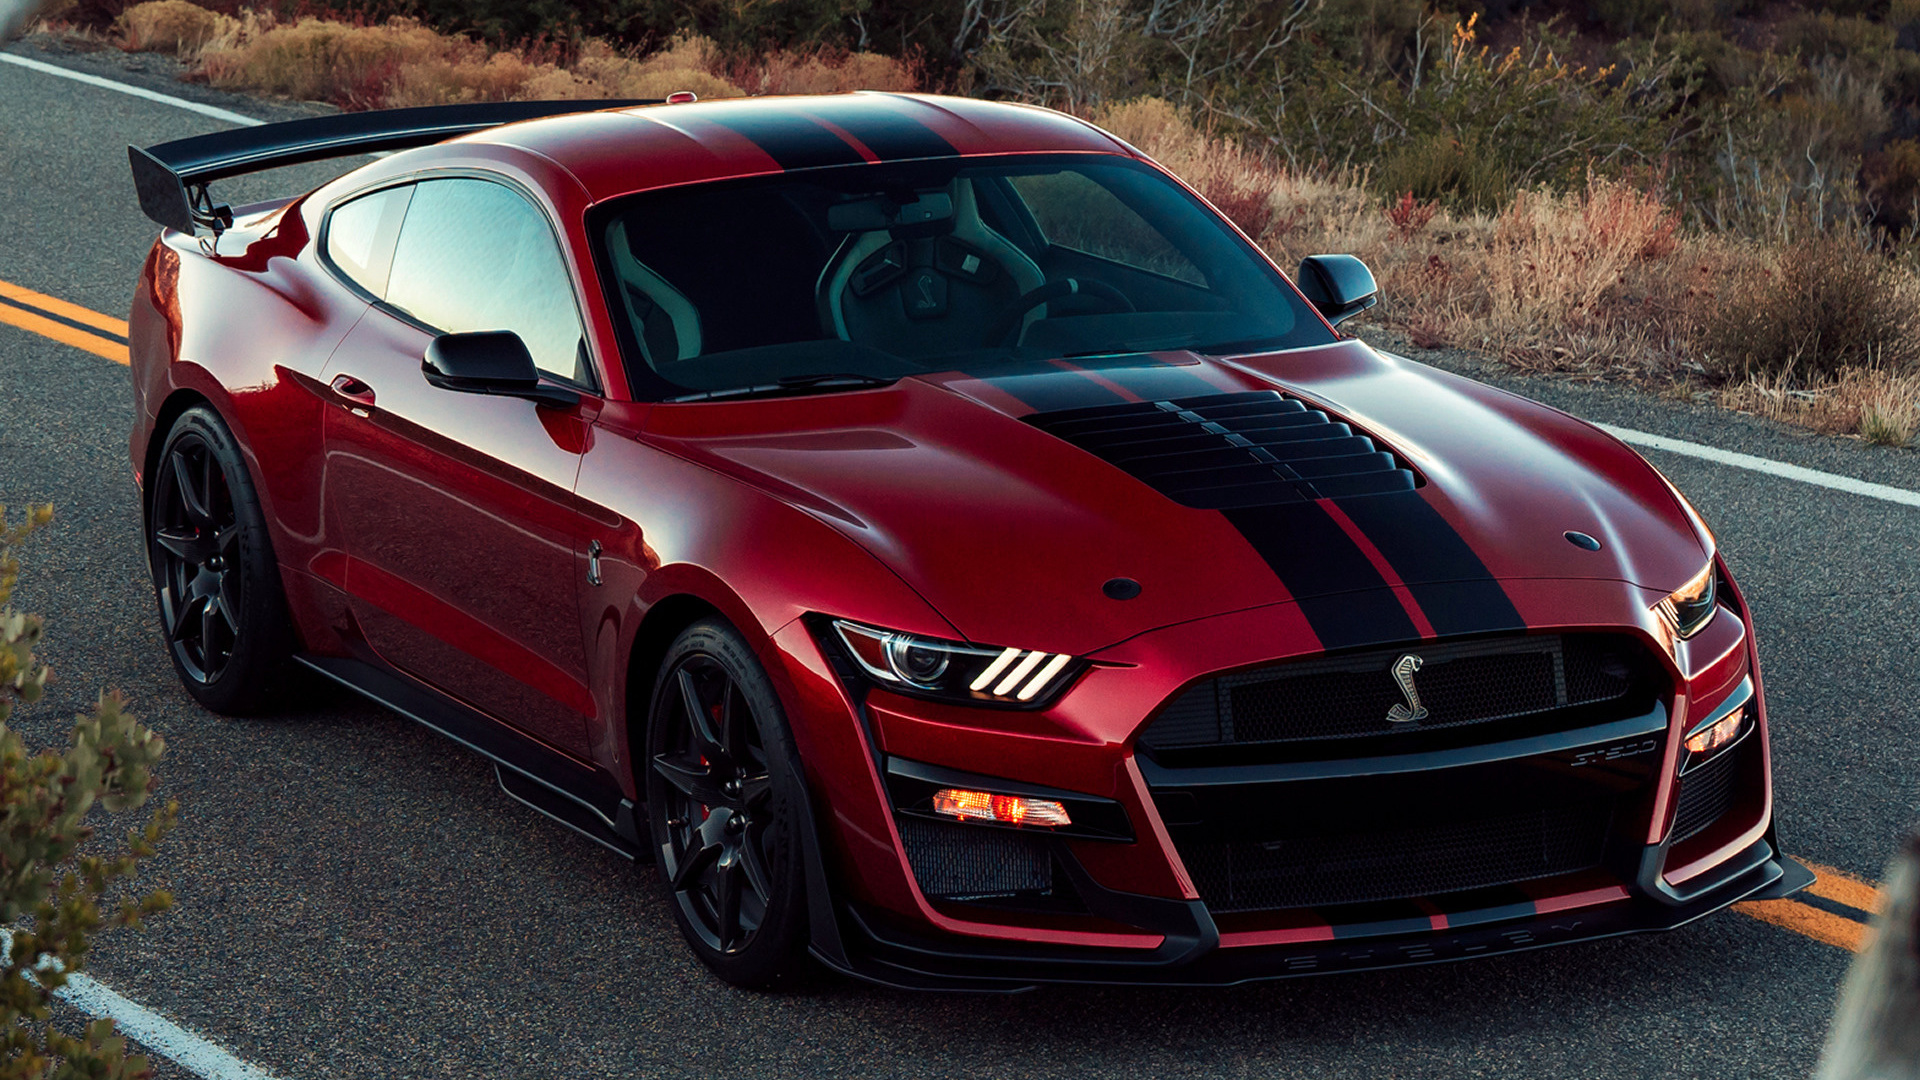 2020 Shelby GT500 Mustang - Wallpapers and HD Images | Car ...